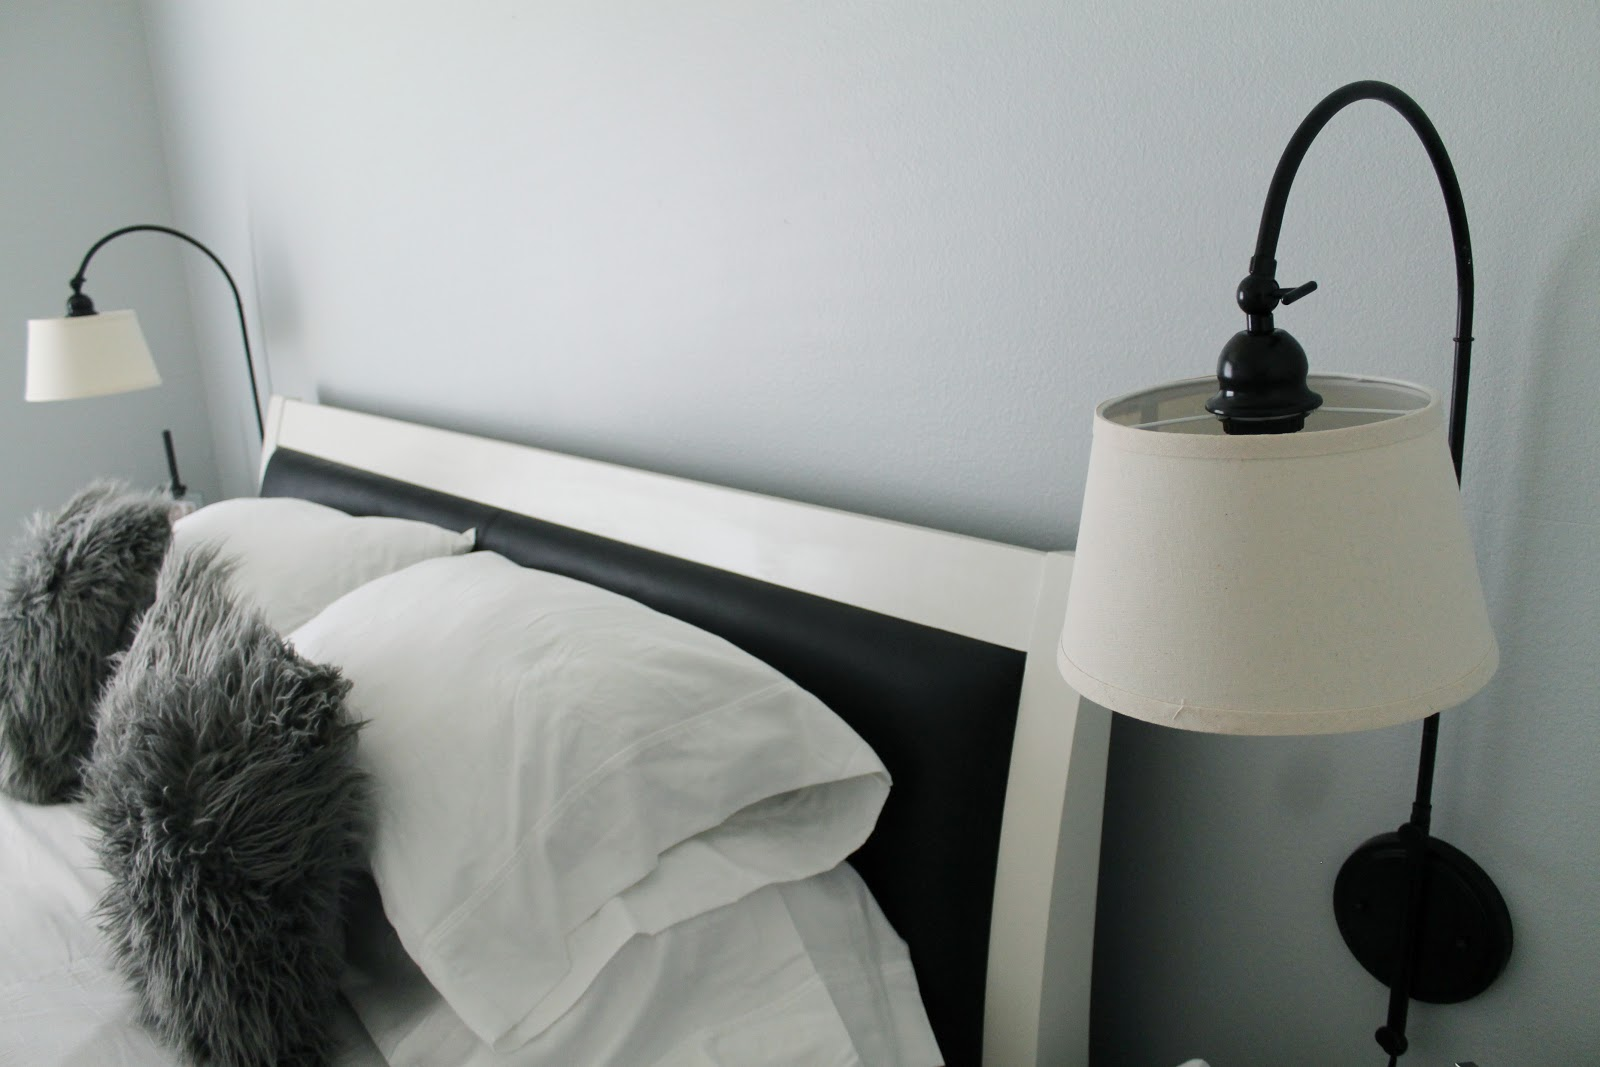 New, Cheap, Modern + Traditional Wall Lamps in the Bedroom - Chris Loves Julia